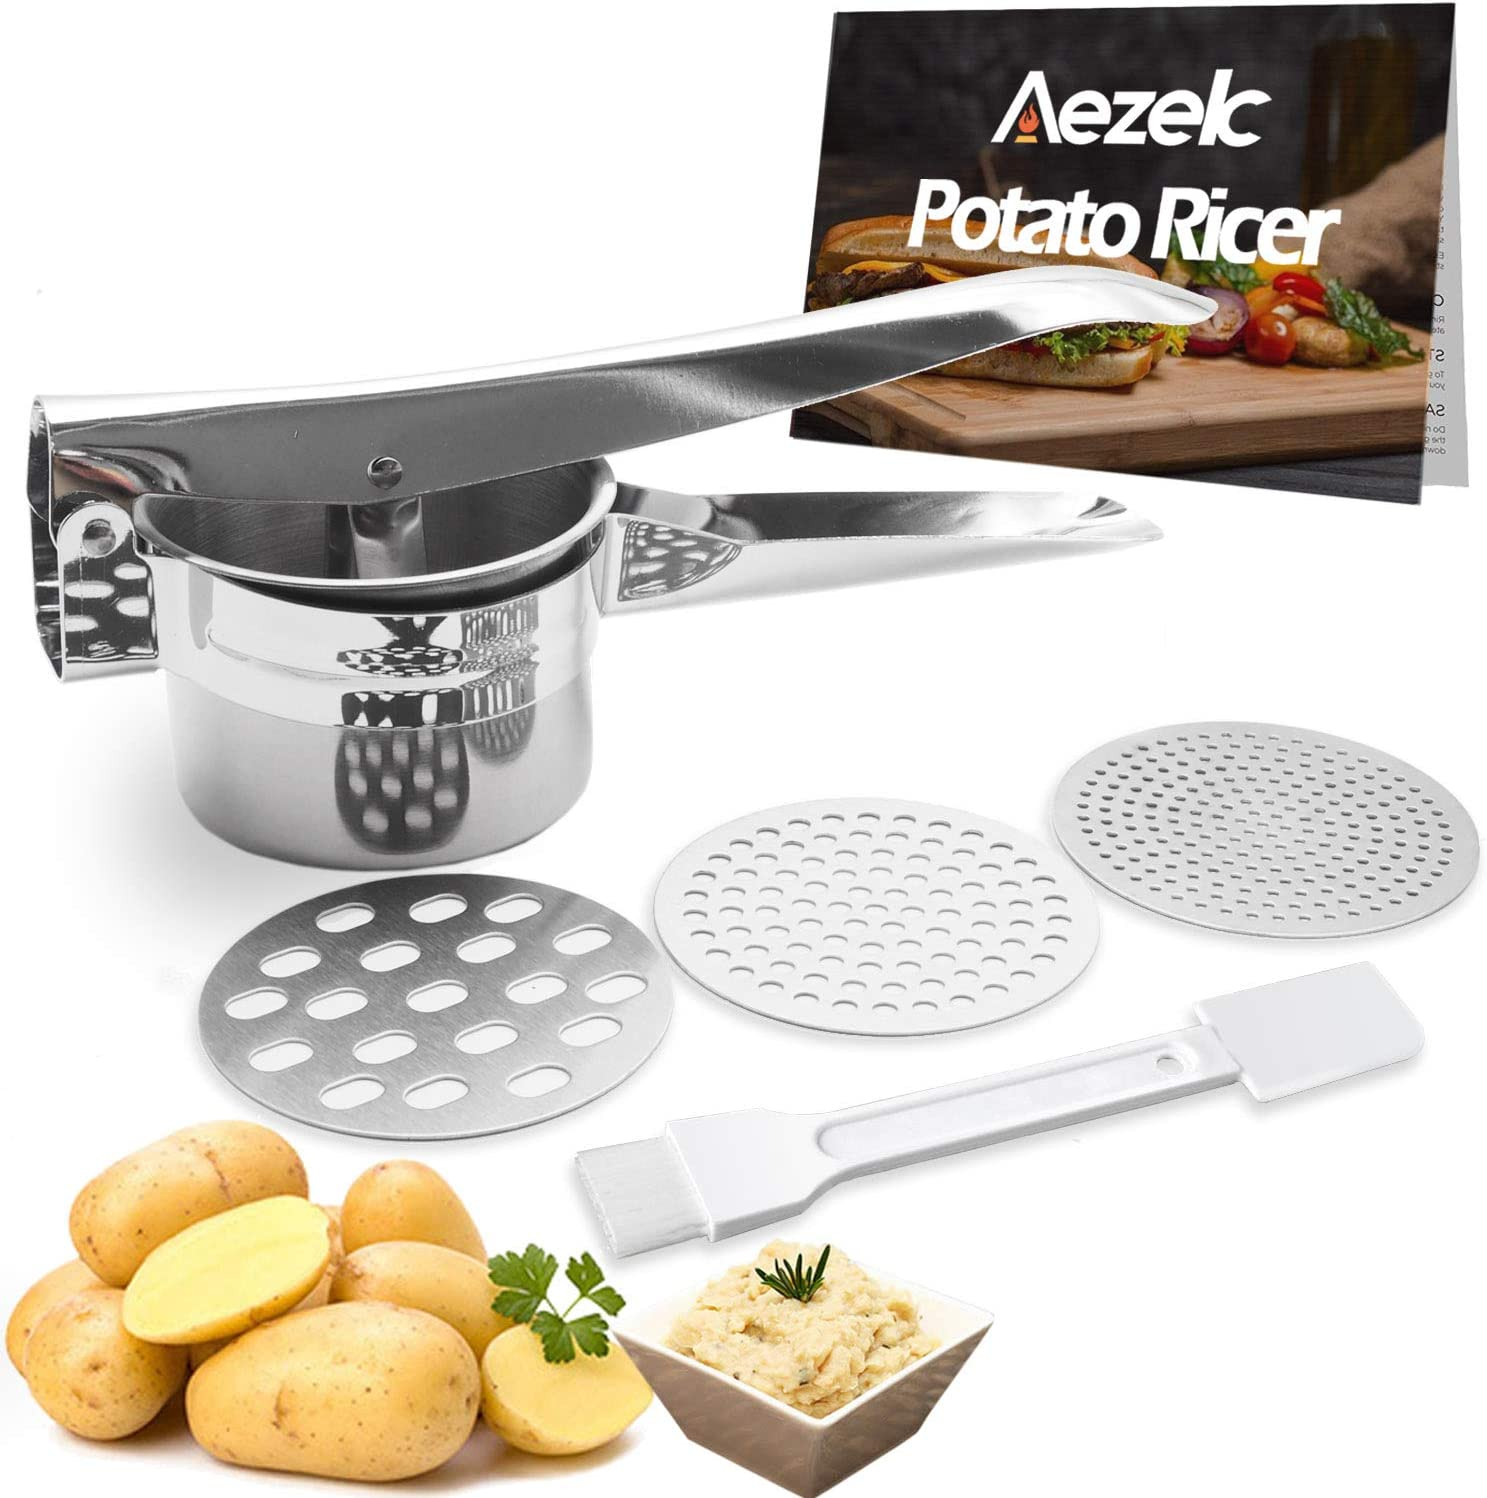 Aezek Potato Ricer and Masher, Makes Light and Fluffy Mashed Potato Perfection, Hand held Kitchen Press Gadget Stainless Steel - Excellent Baby Food Mill and Vegetable Strainer - Fruit Juicer